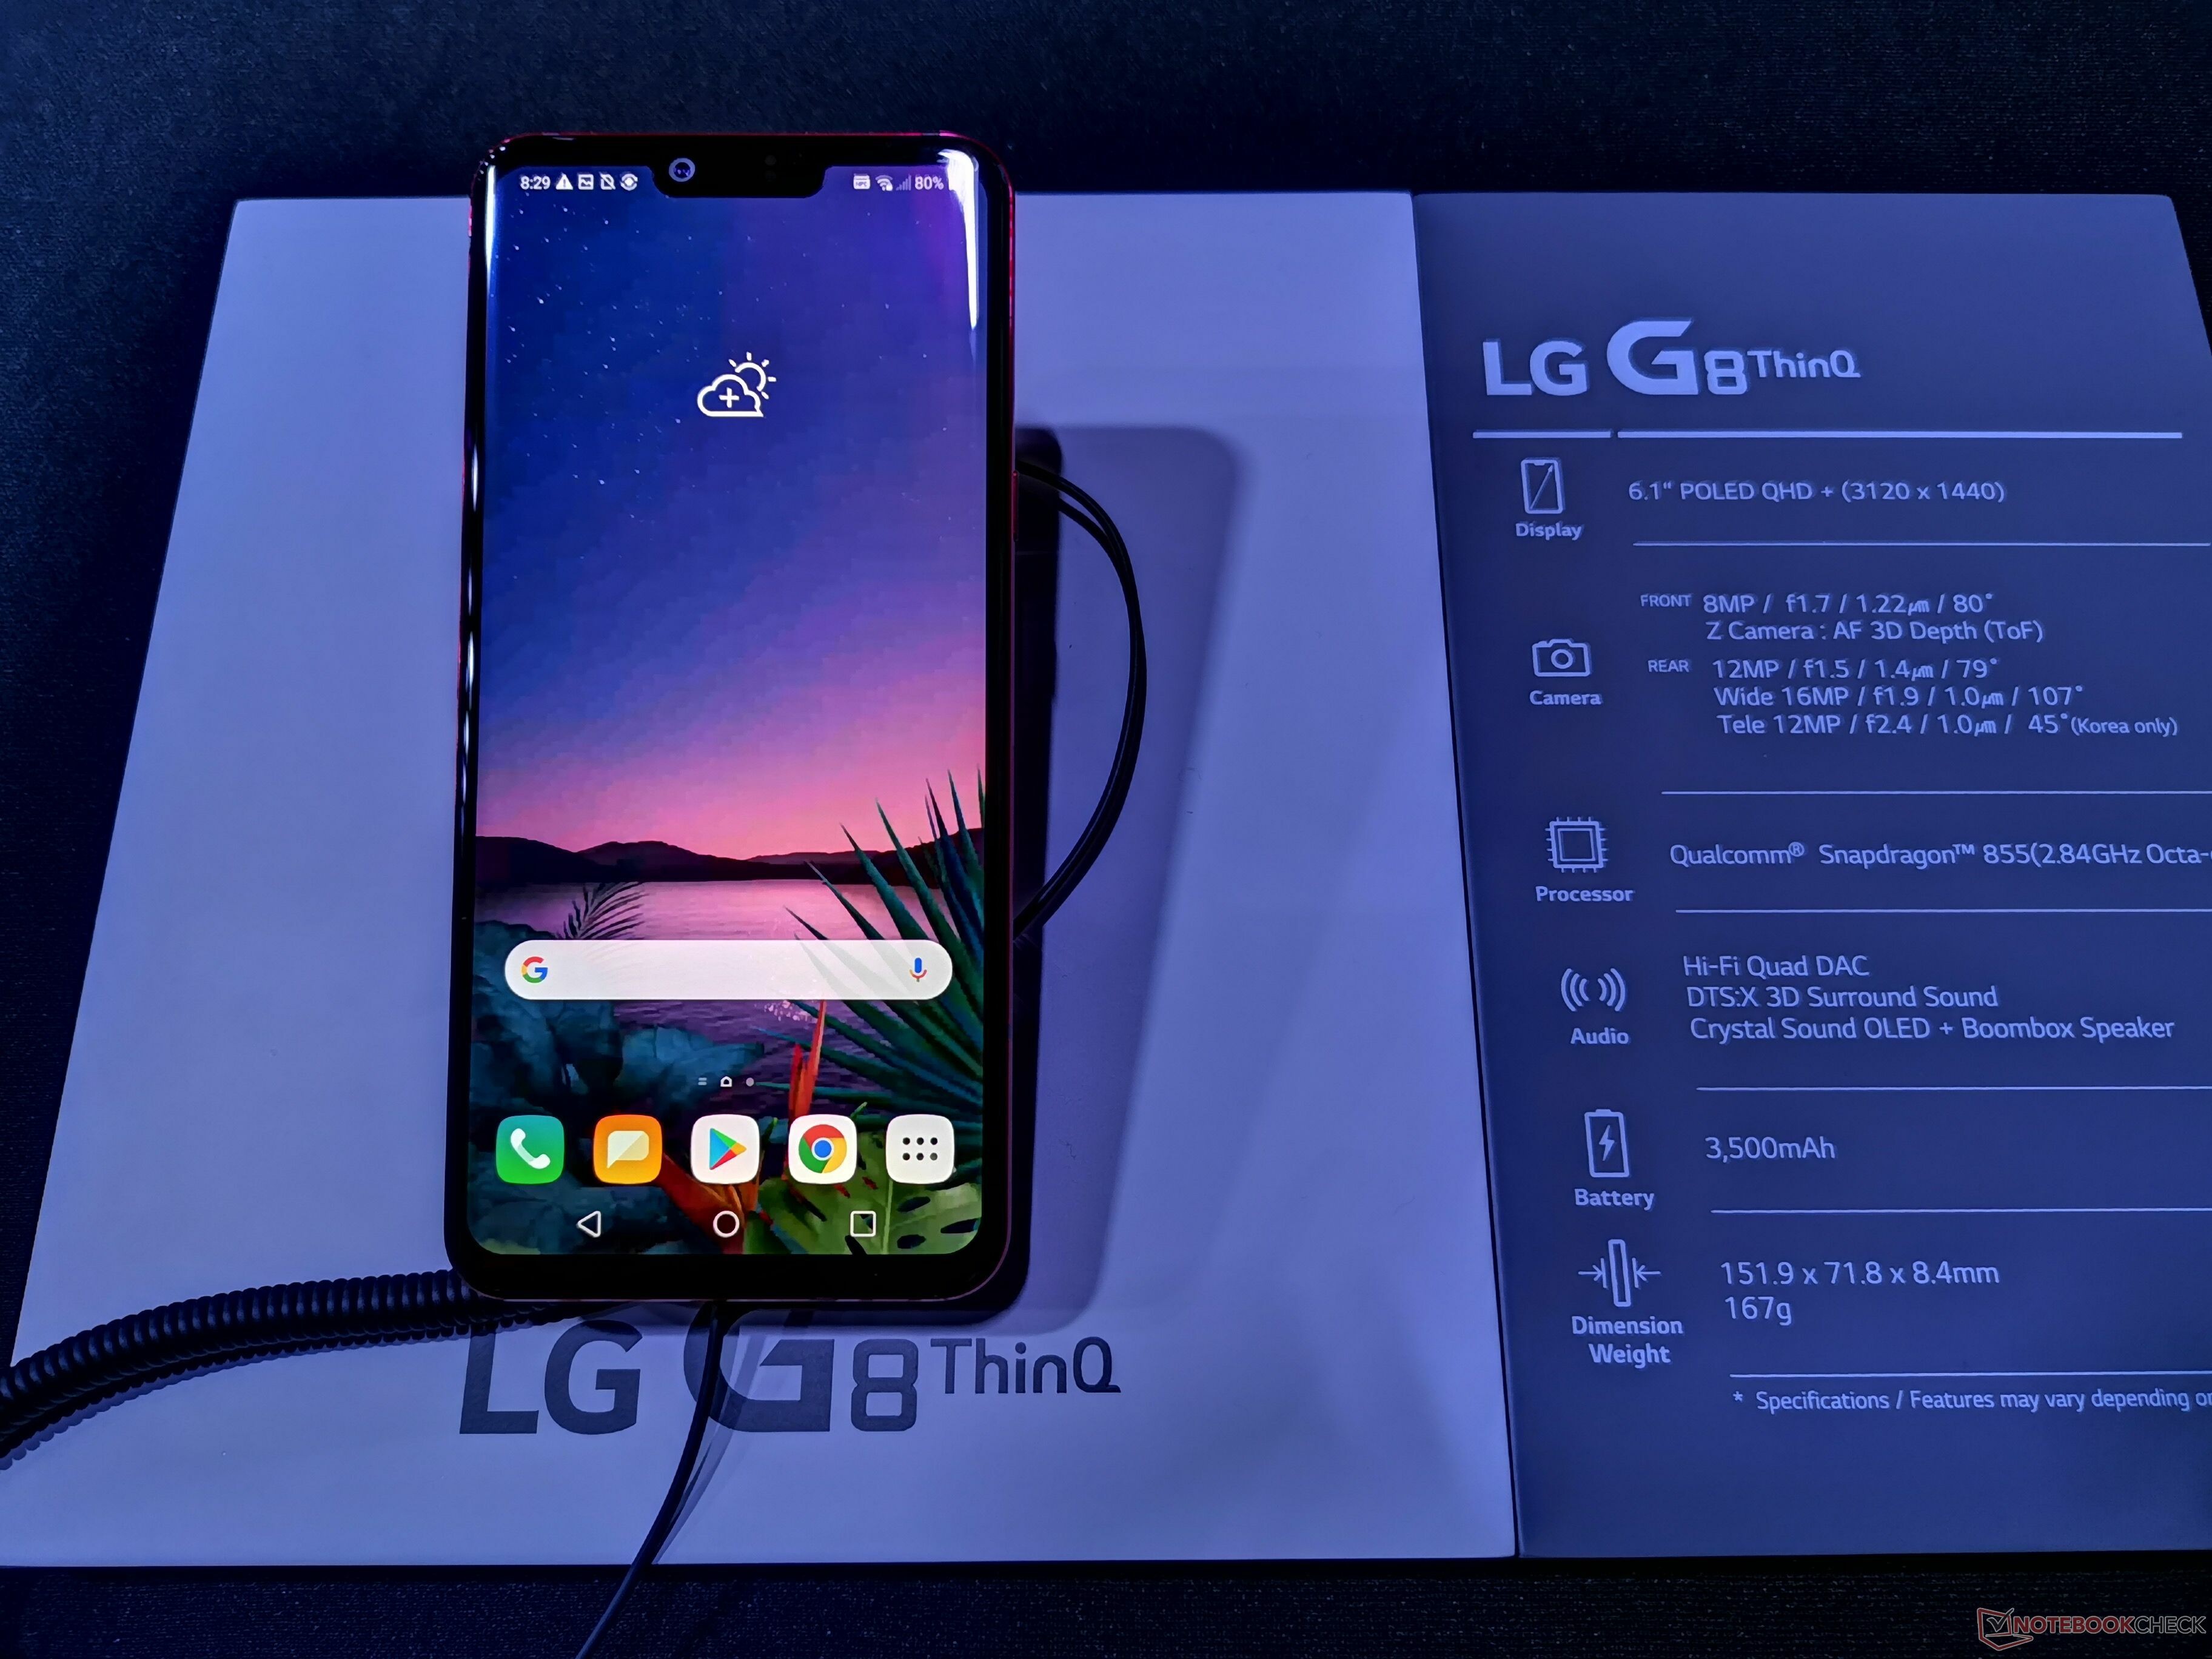 LG G8 ThinQ and G8s ThinQ offer a host of engaging